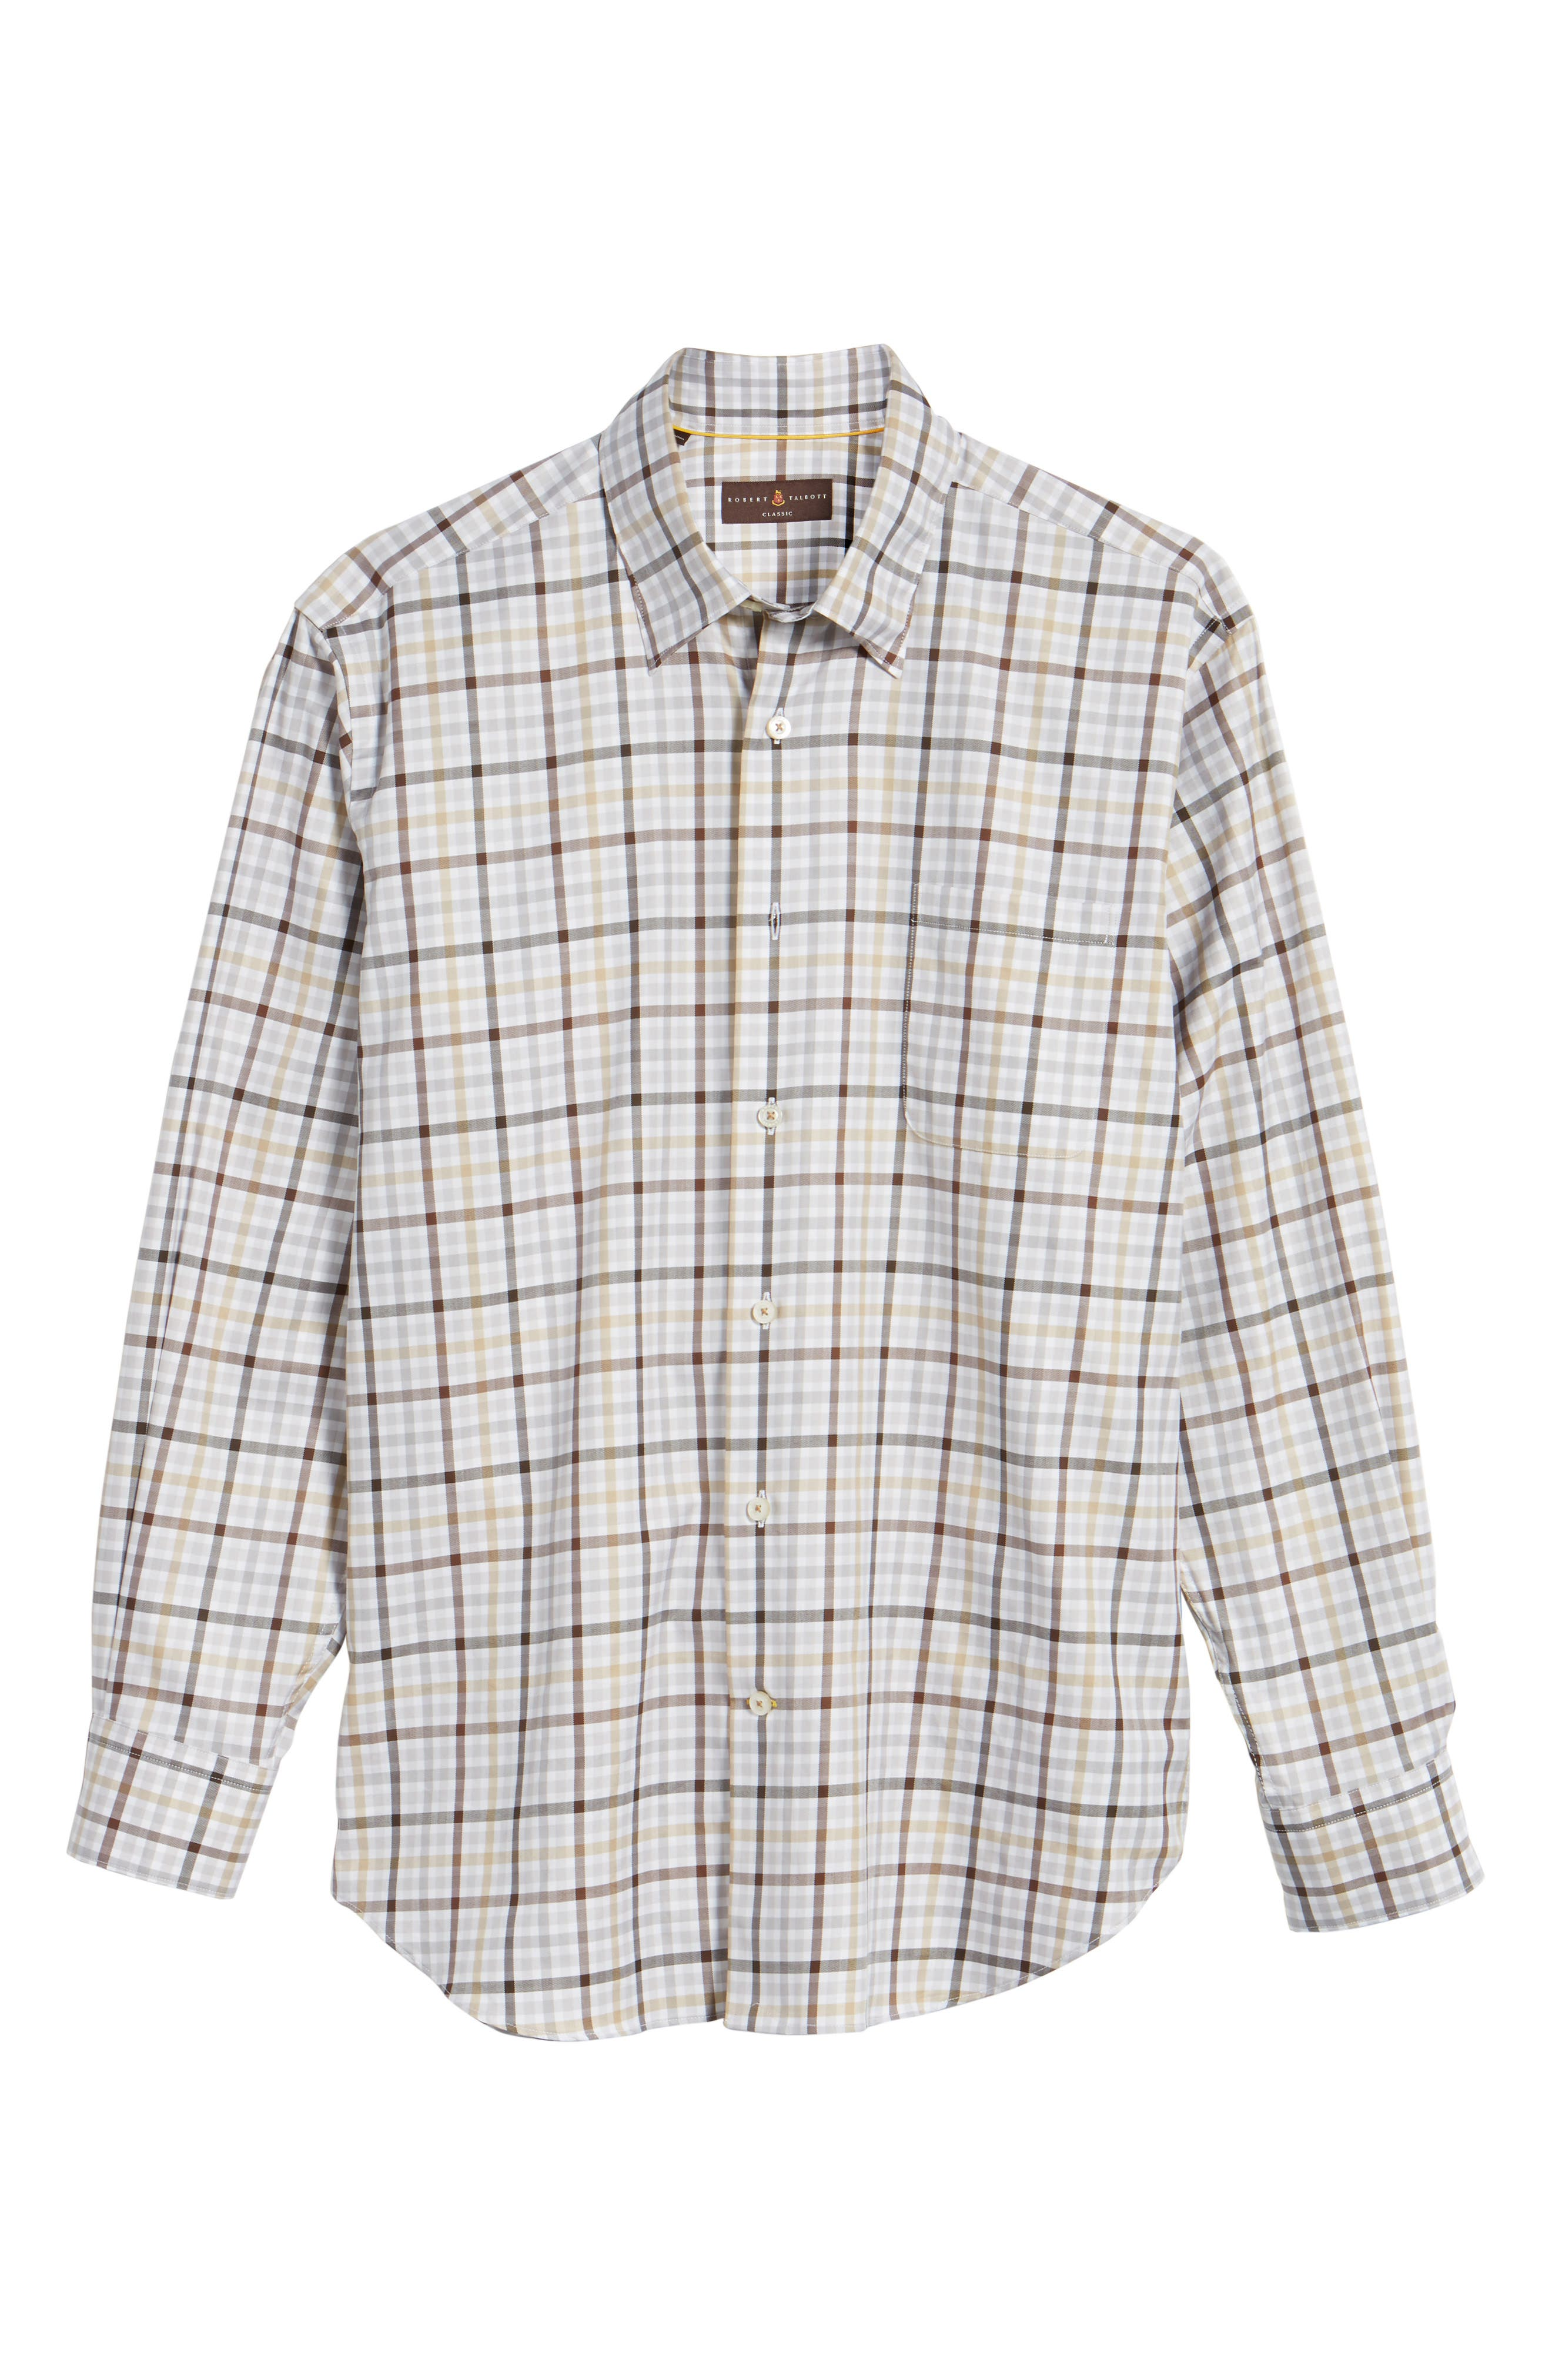 Anderson Classic Fit Plaid Micro Twill Sport Shirt,                             Alternate thumbnail 6, color,                             201